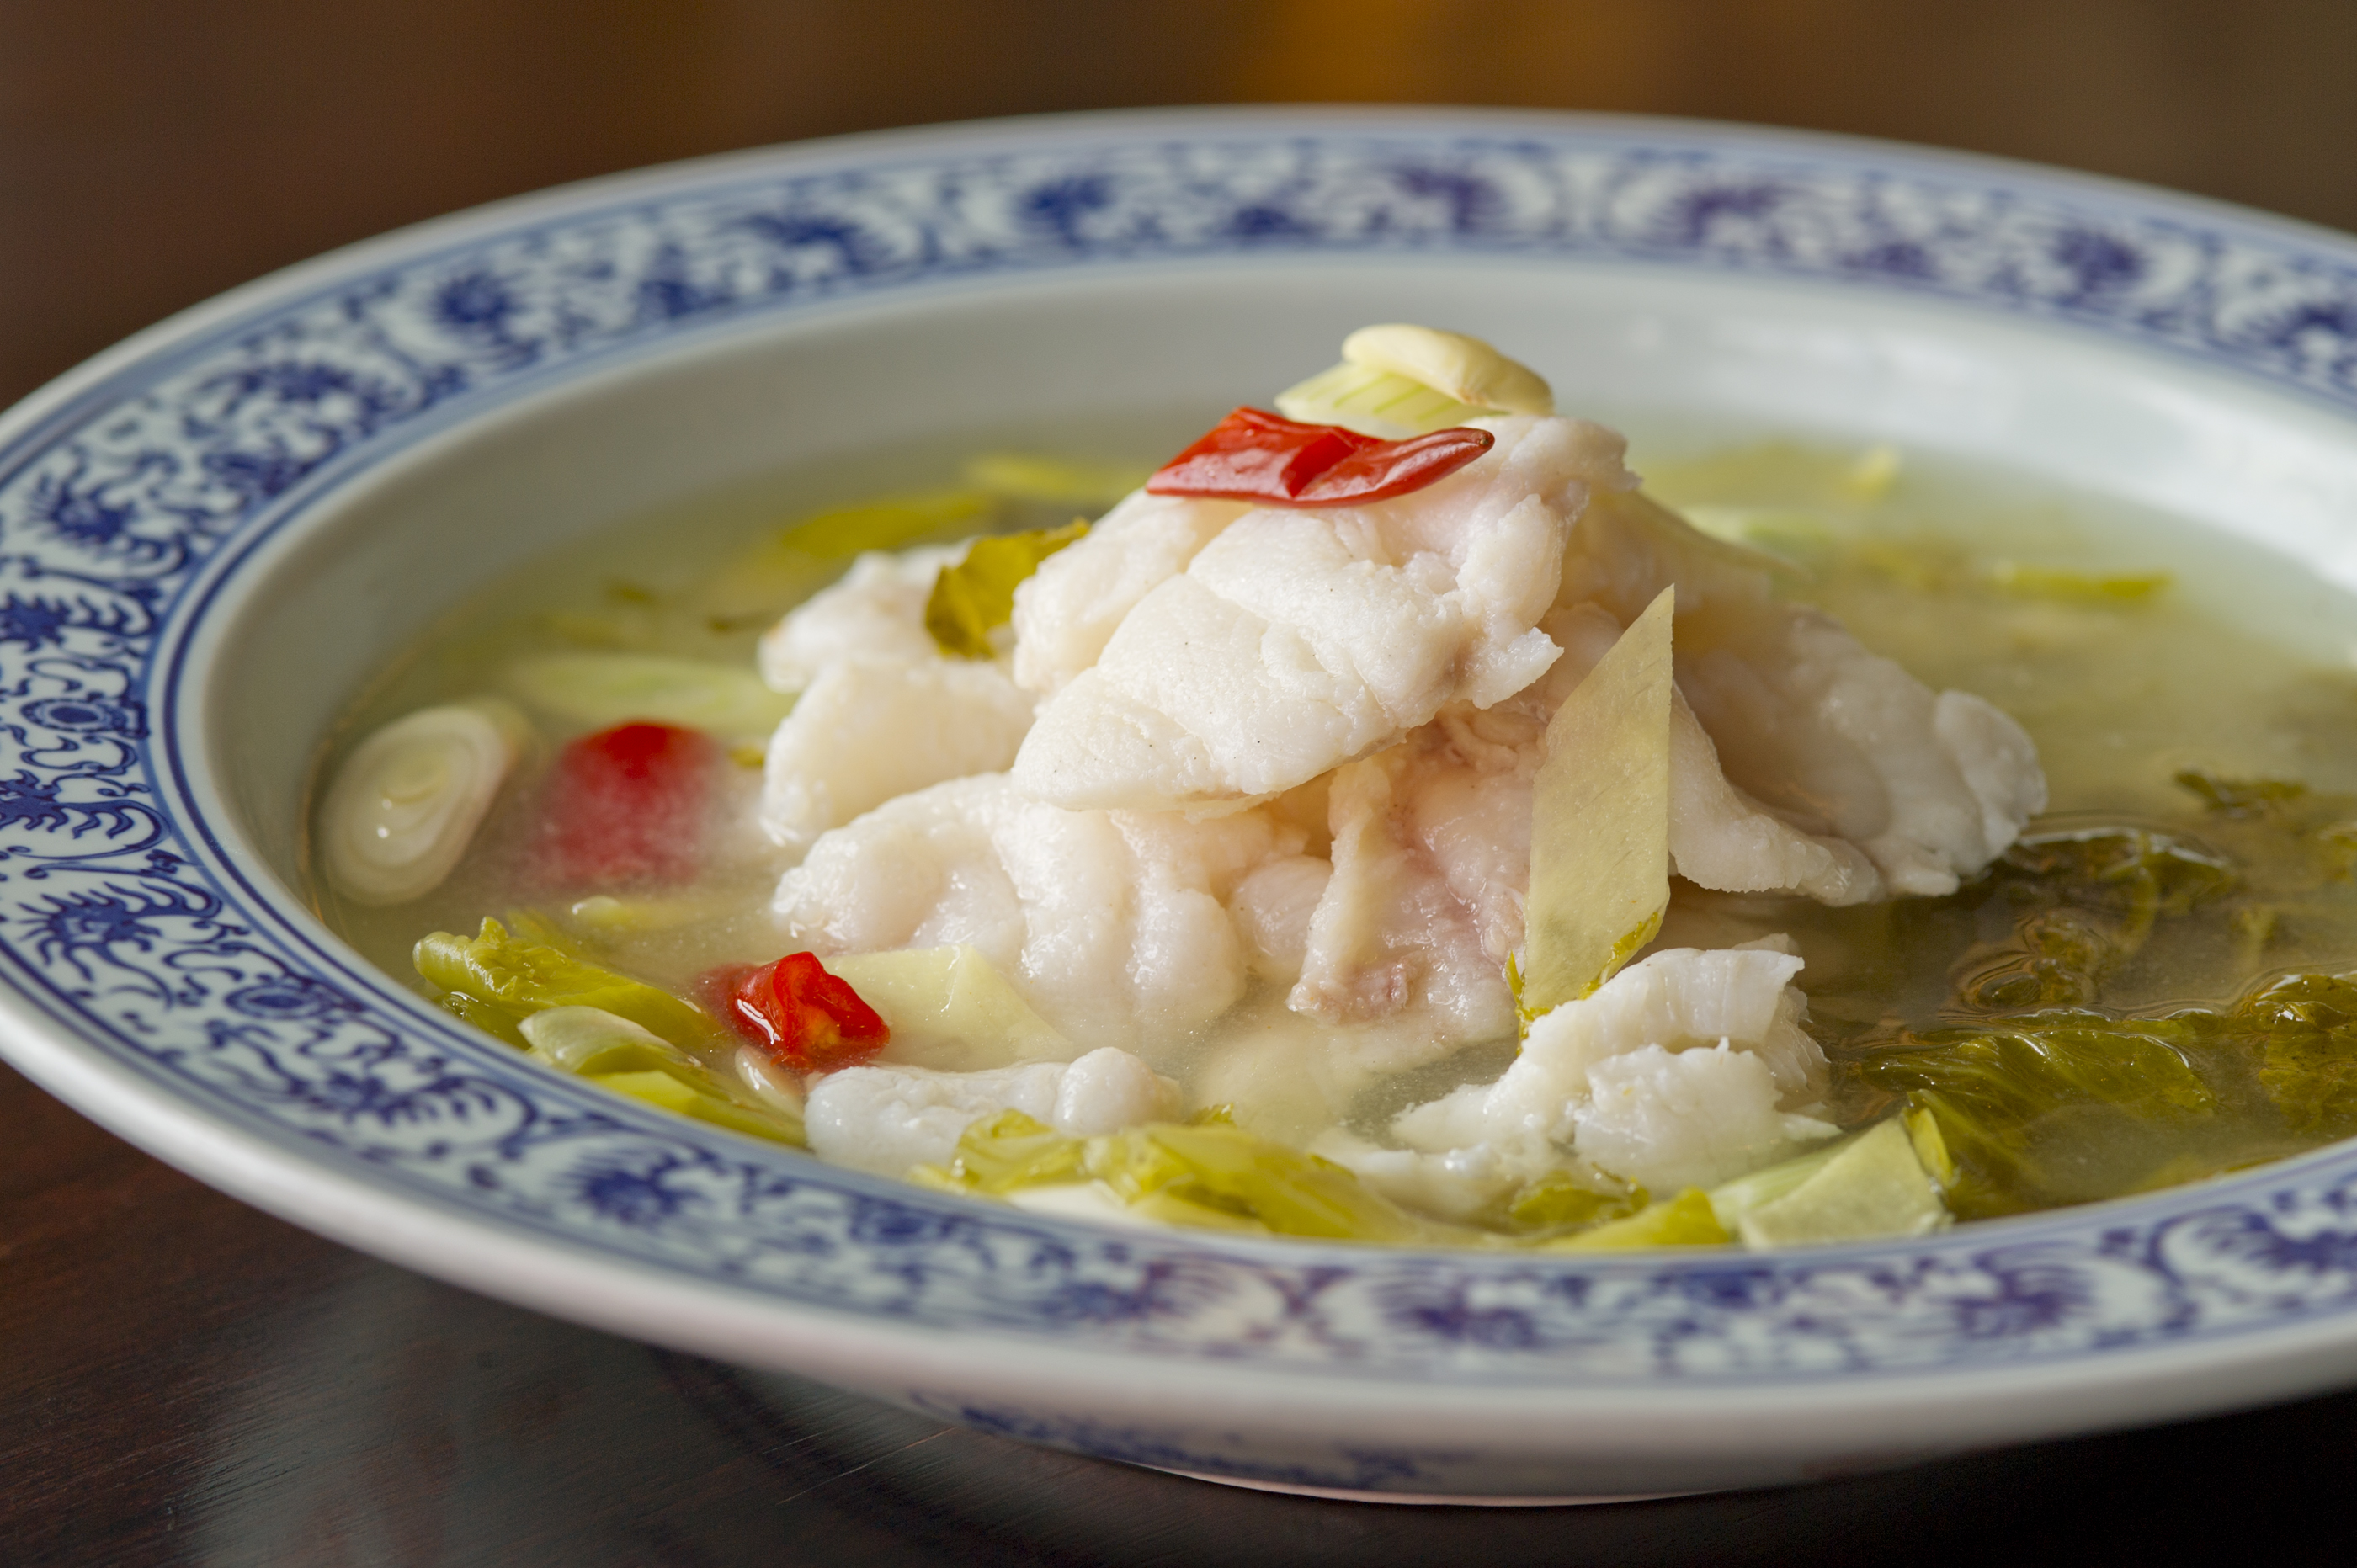 Hutong Monkfish fillet in sour broth